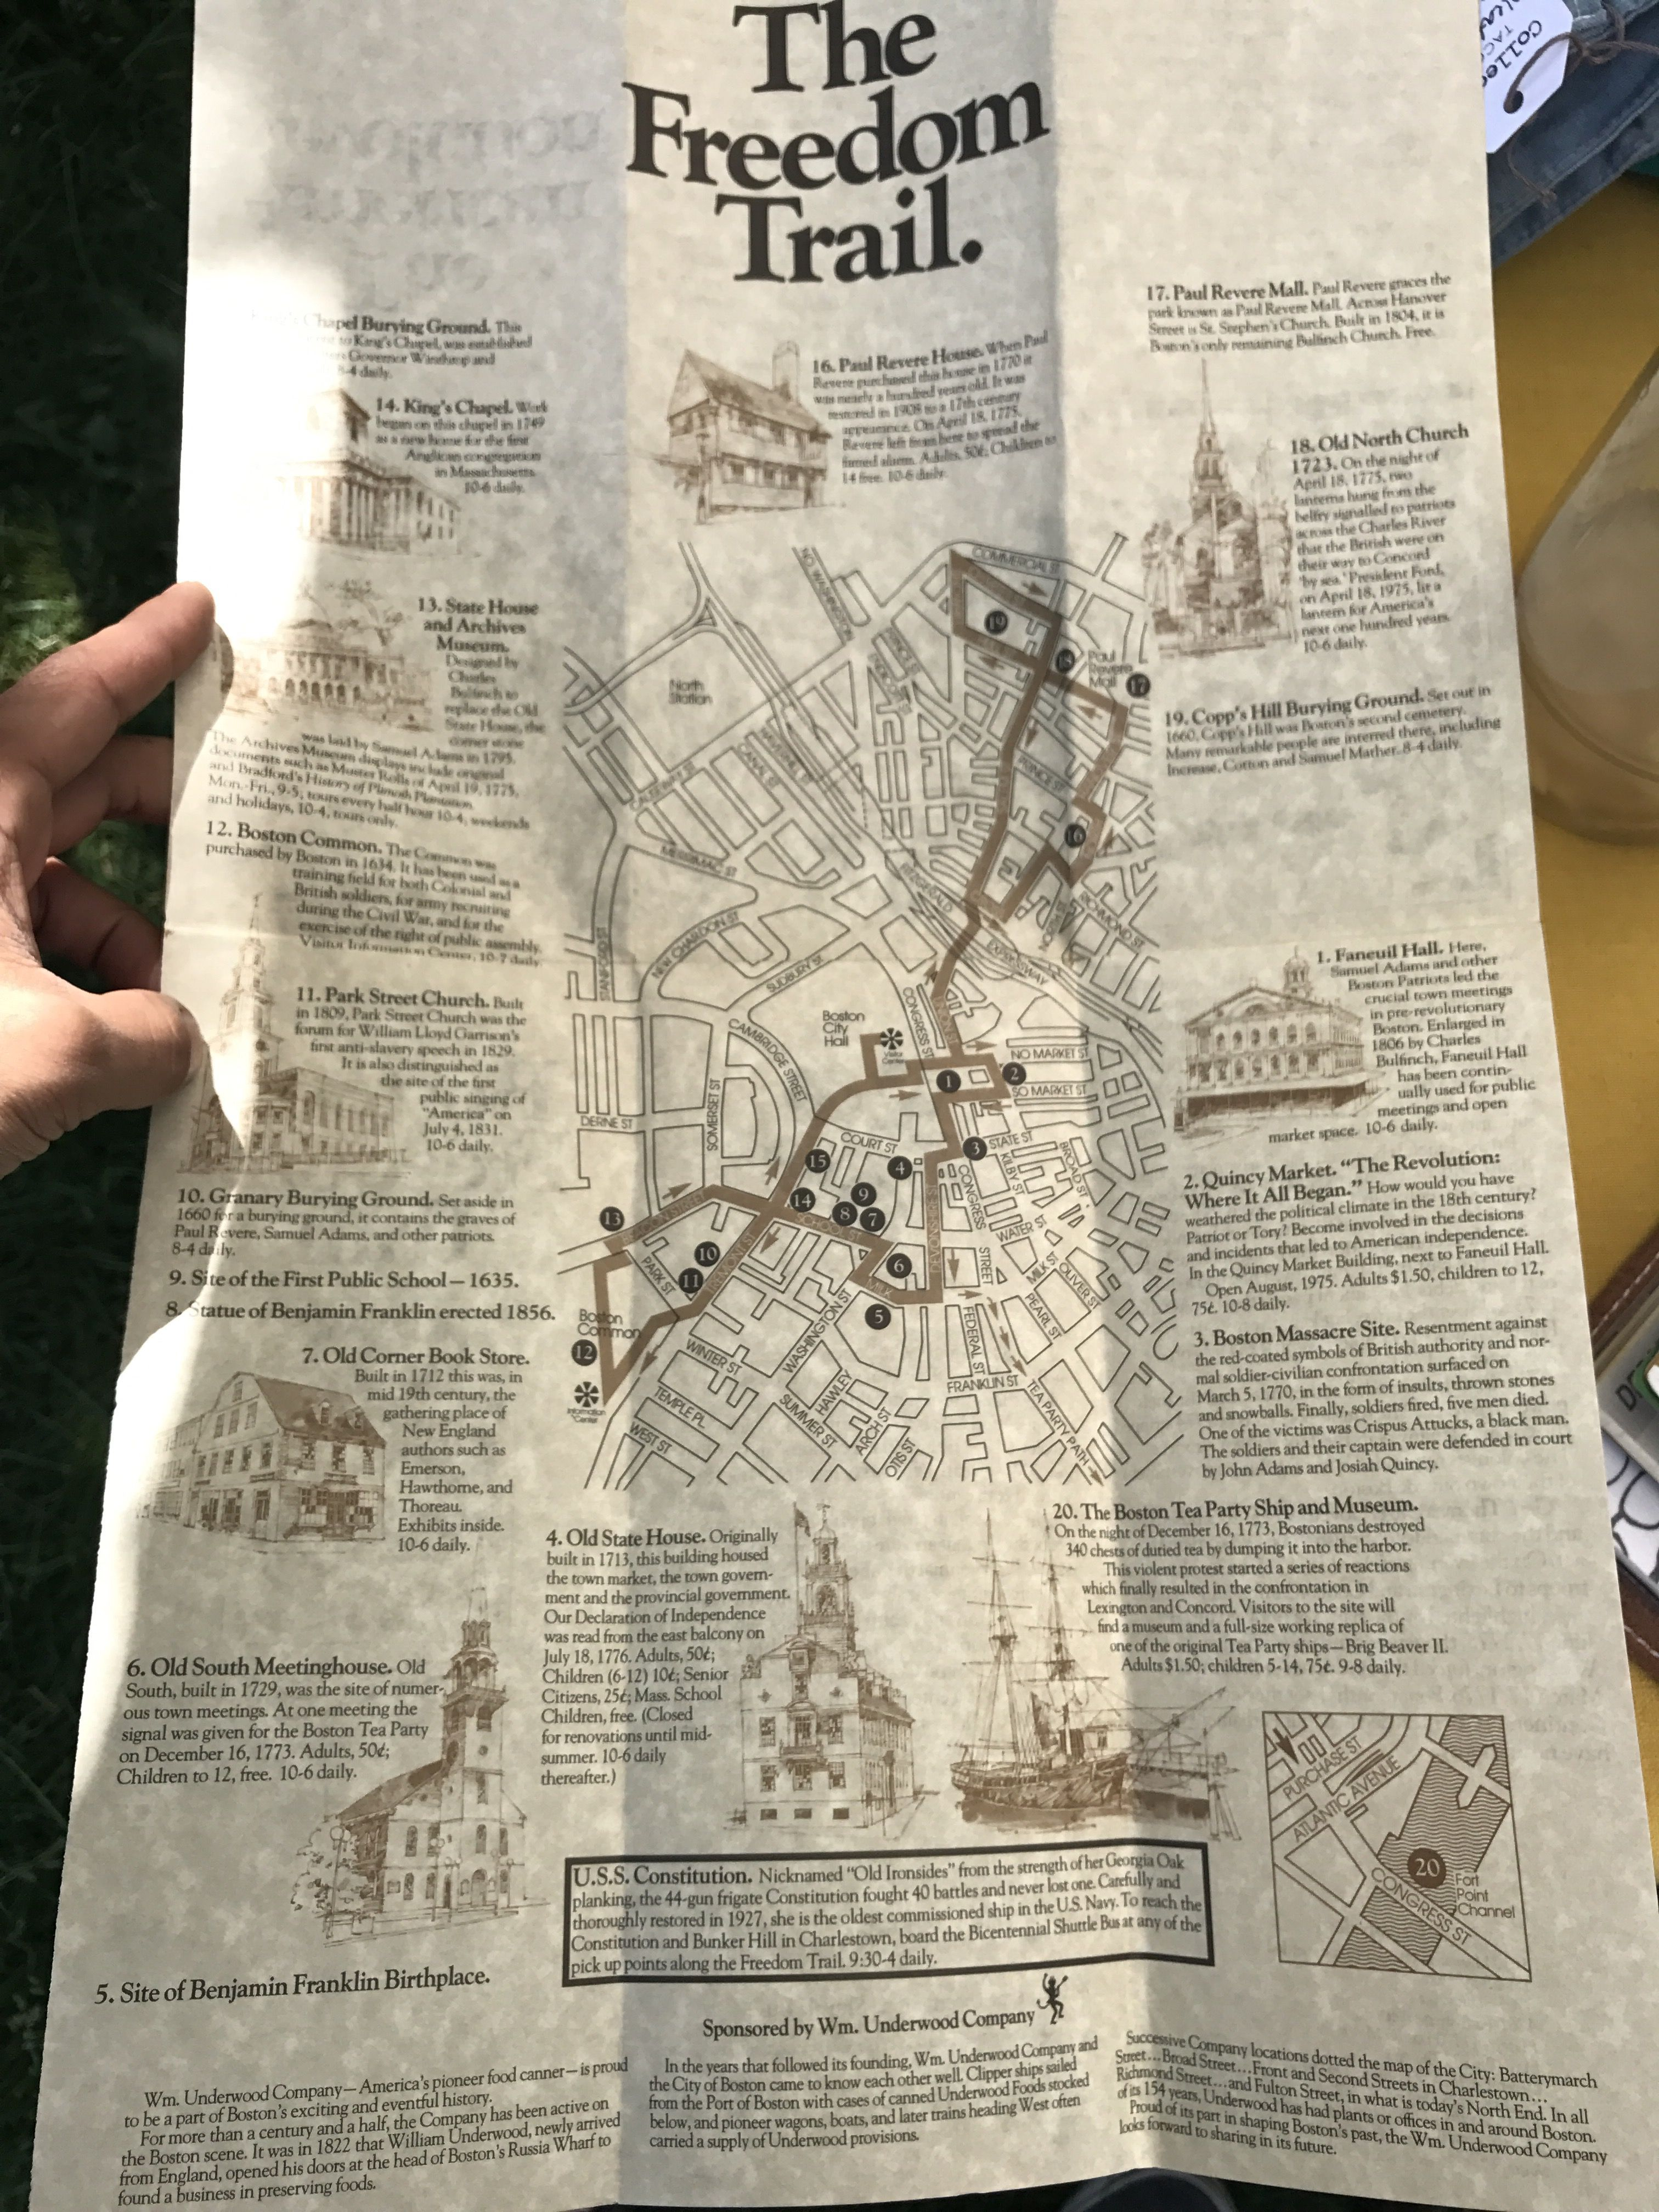 Freedom Trail Map Fallout 4 : freedom, trail, fallout, Where, Freedom, Trail, Fallout, World, Atlas